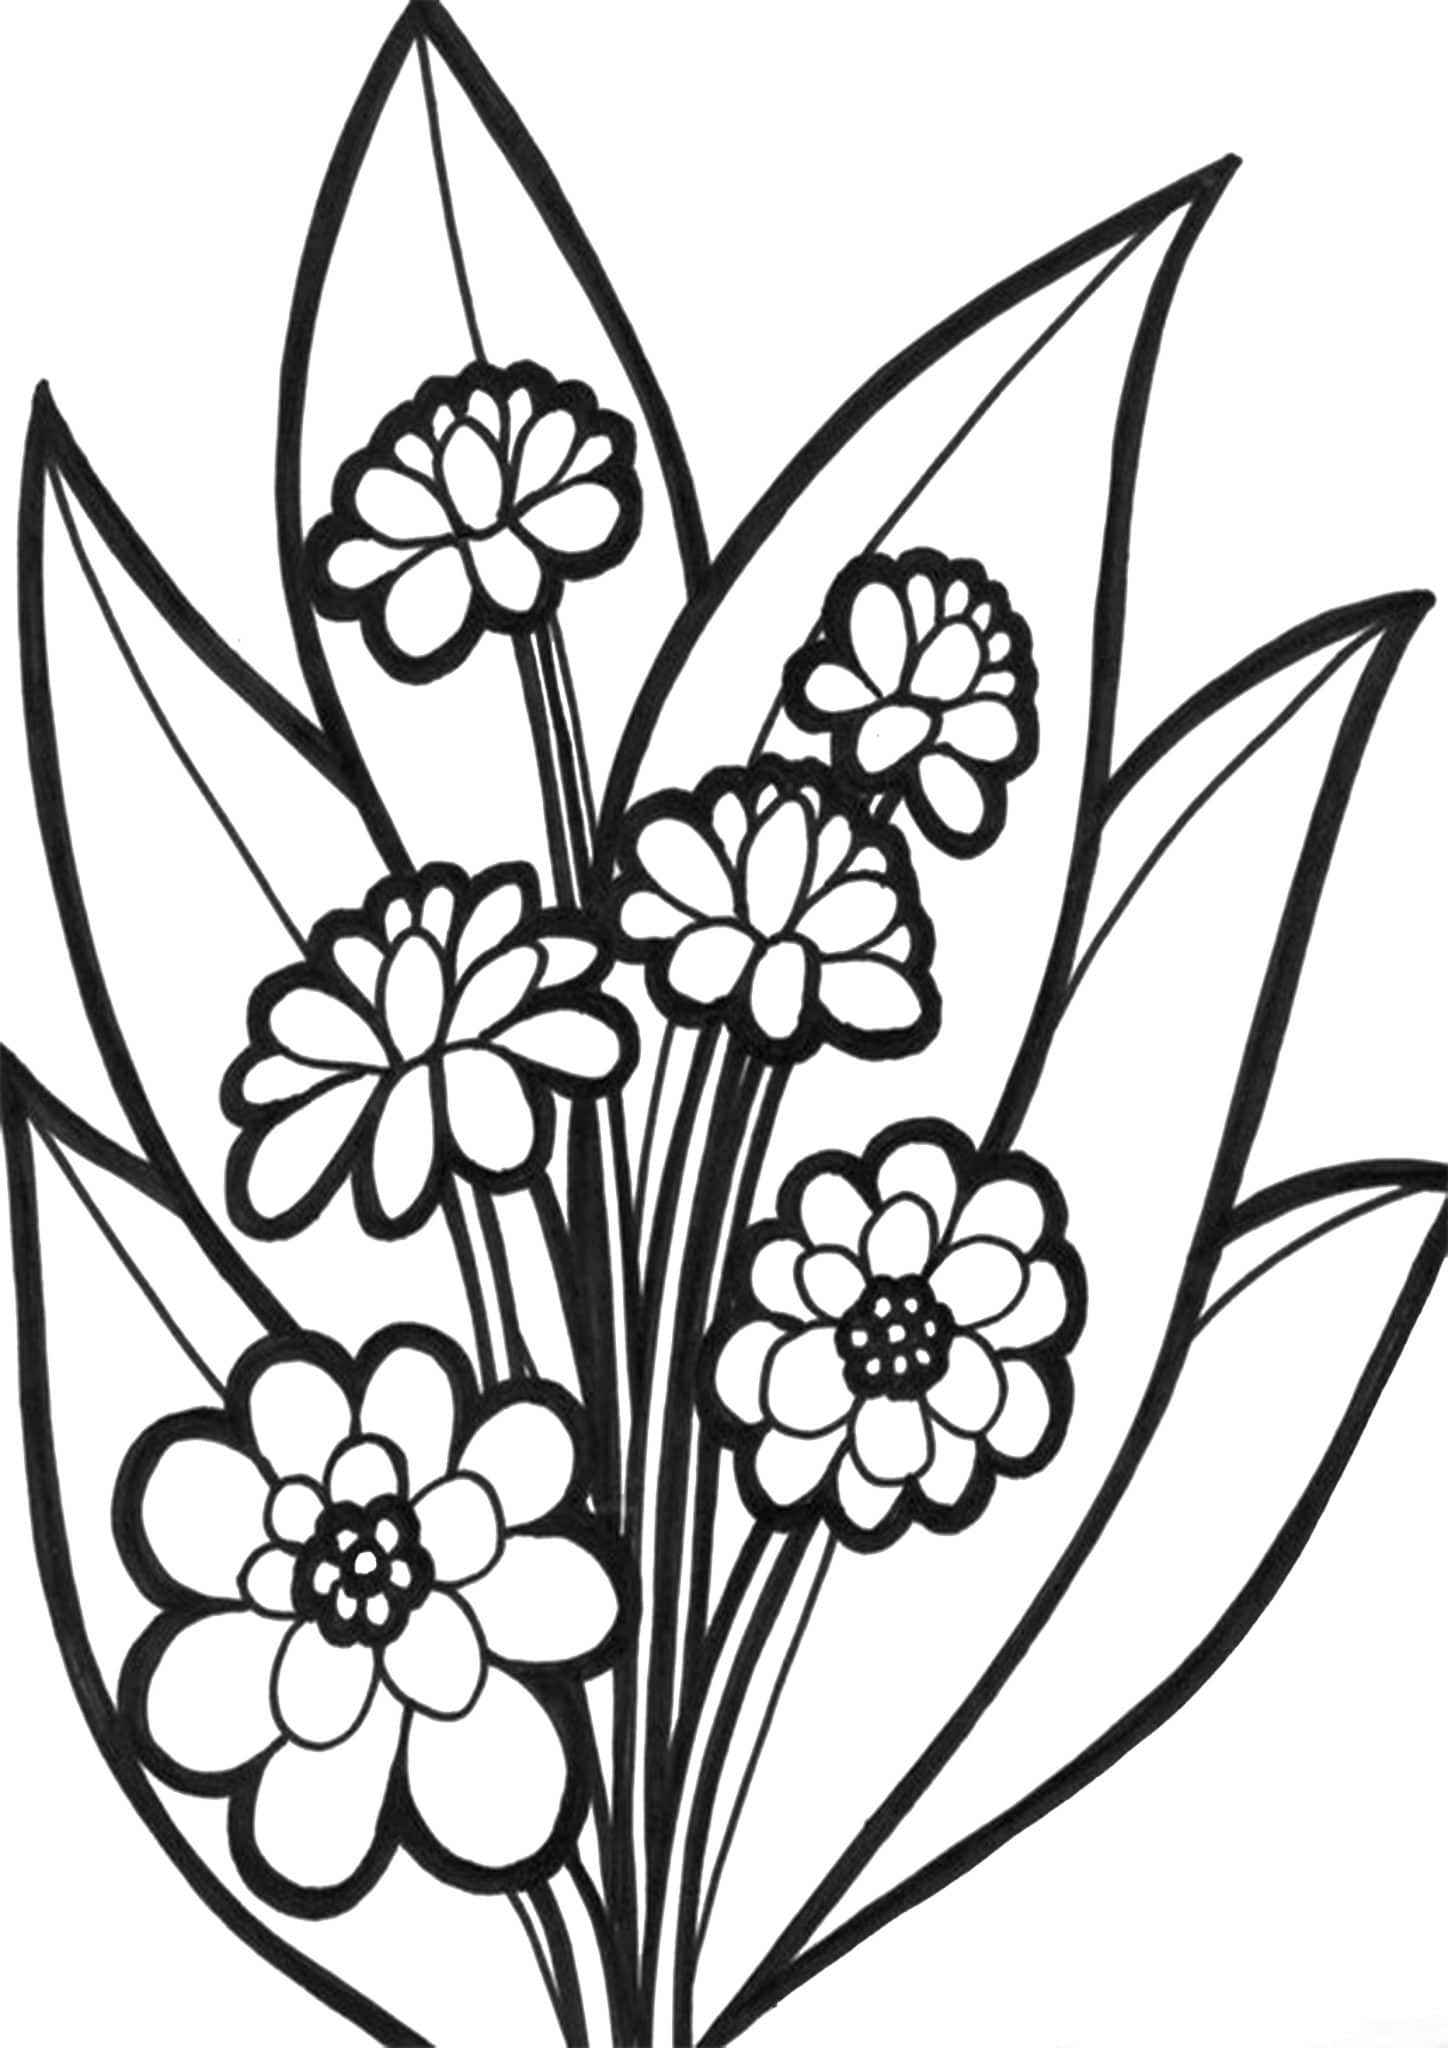 flower coloring sheet coloring town sheet coloring flower